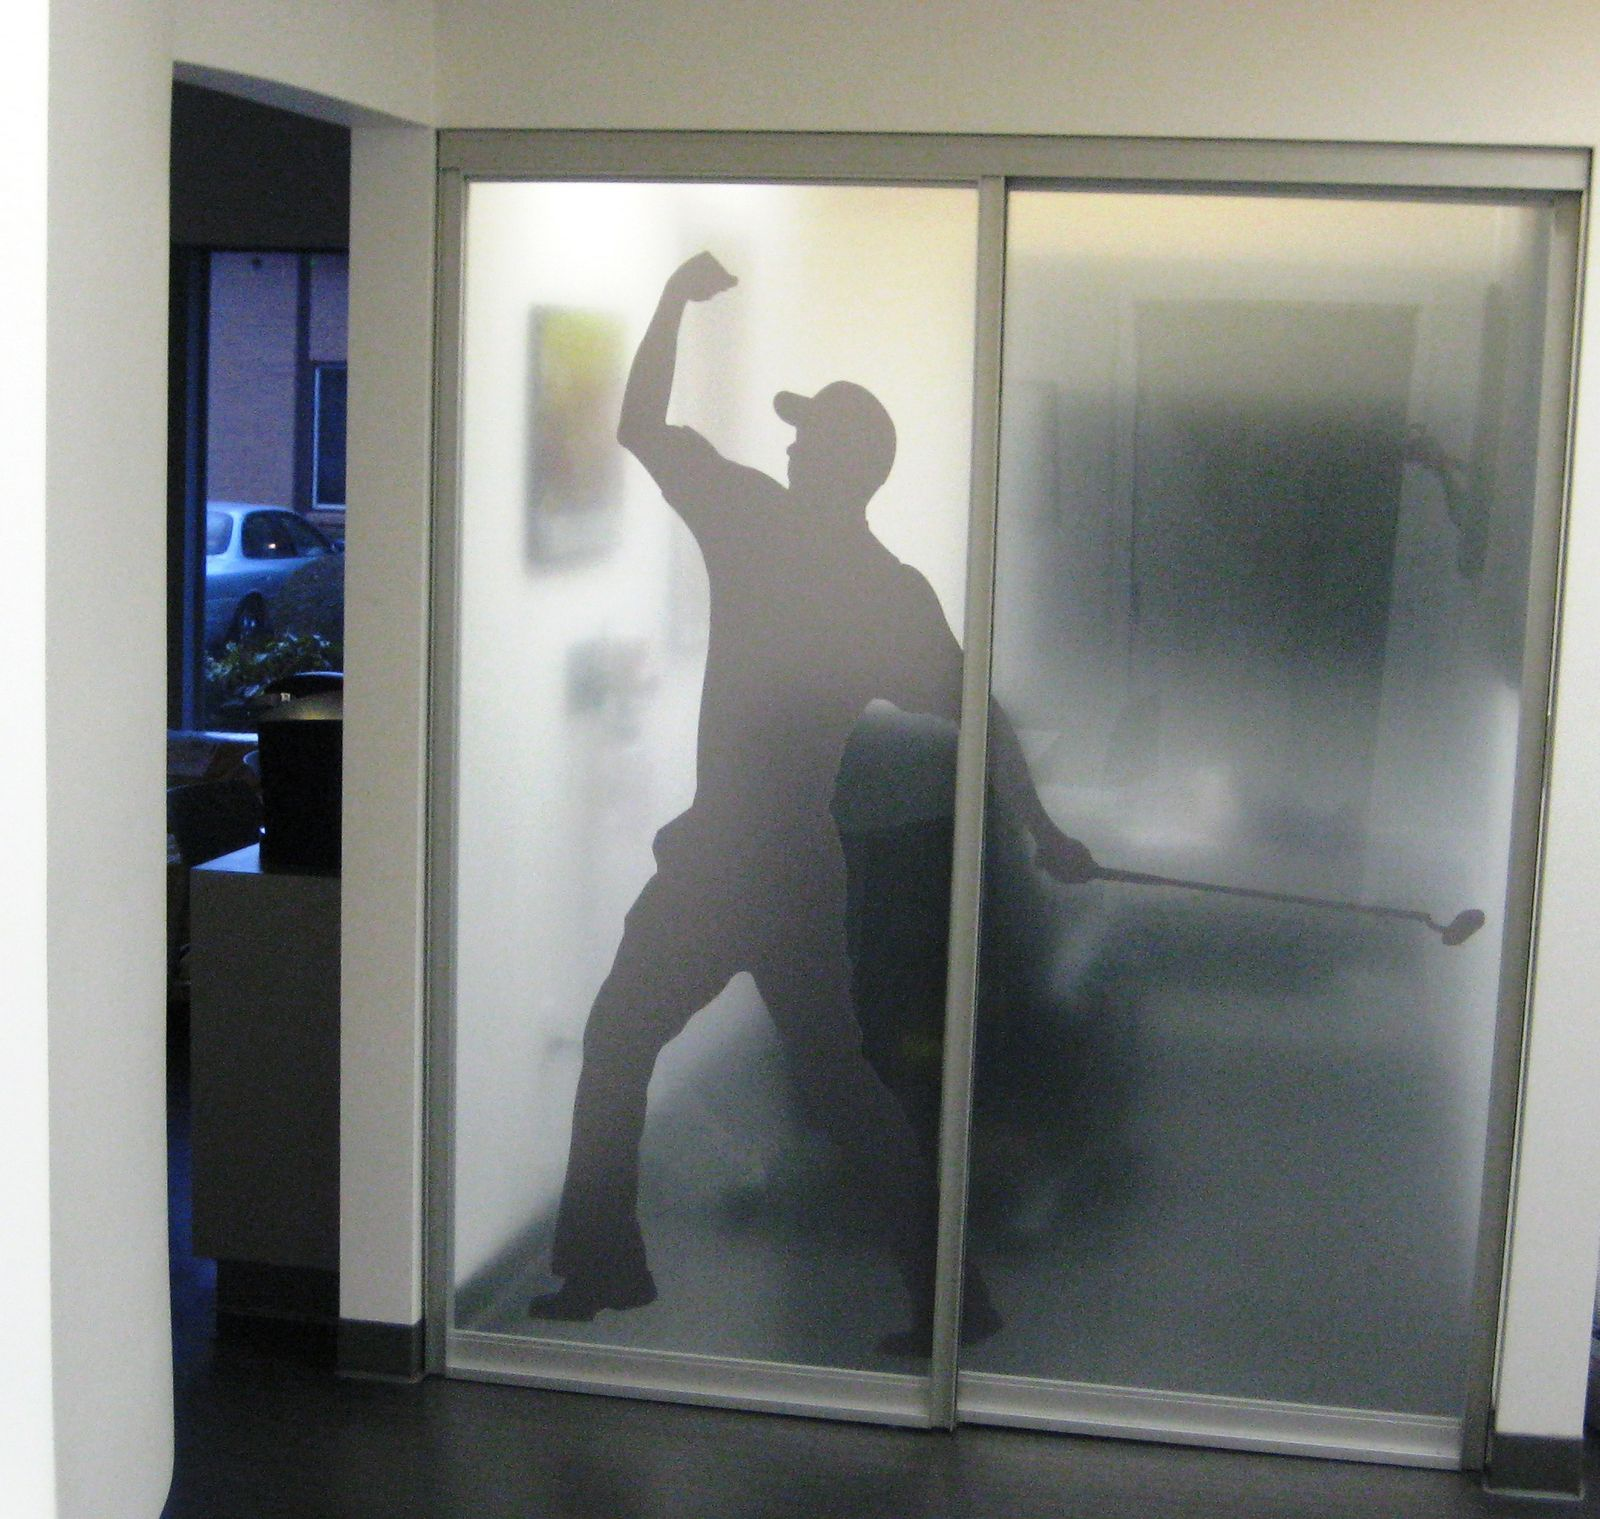 commercial windows tinting film | 3M Commercial Window Tinting & Privacy Film by Reflections ...